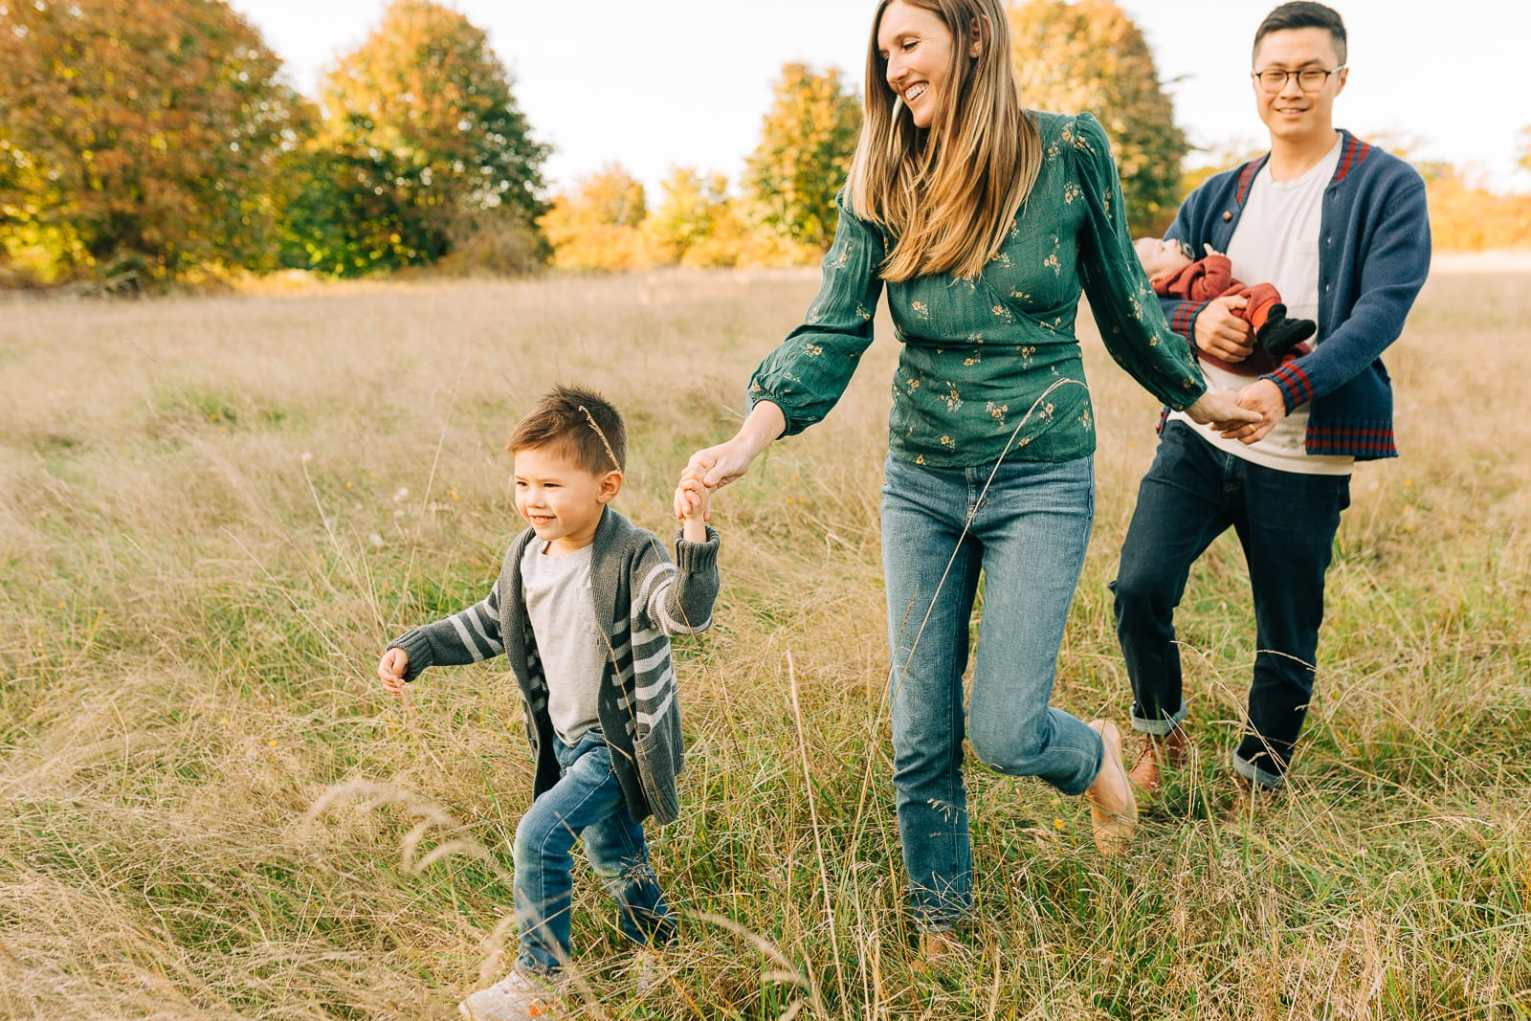 Discovery Park is a beautiful place to take family photos. It has fields, trails, and beach. It is very family-friendly as well!